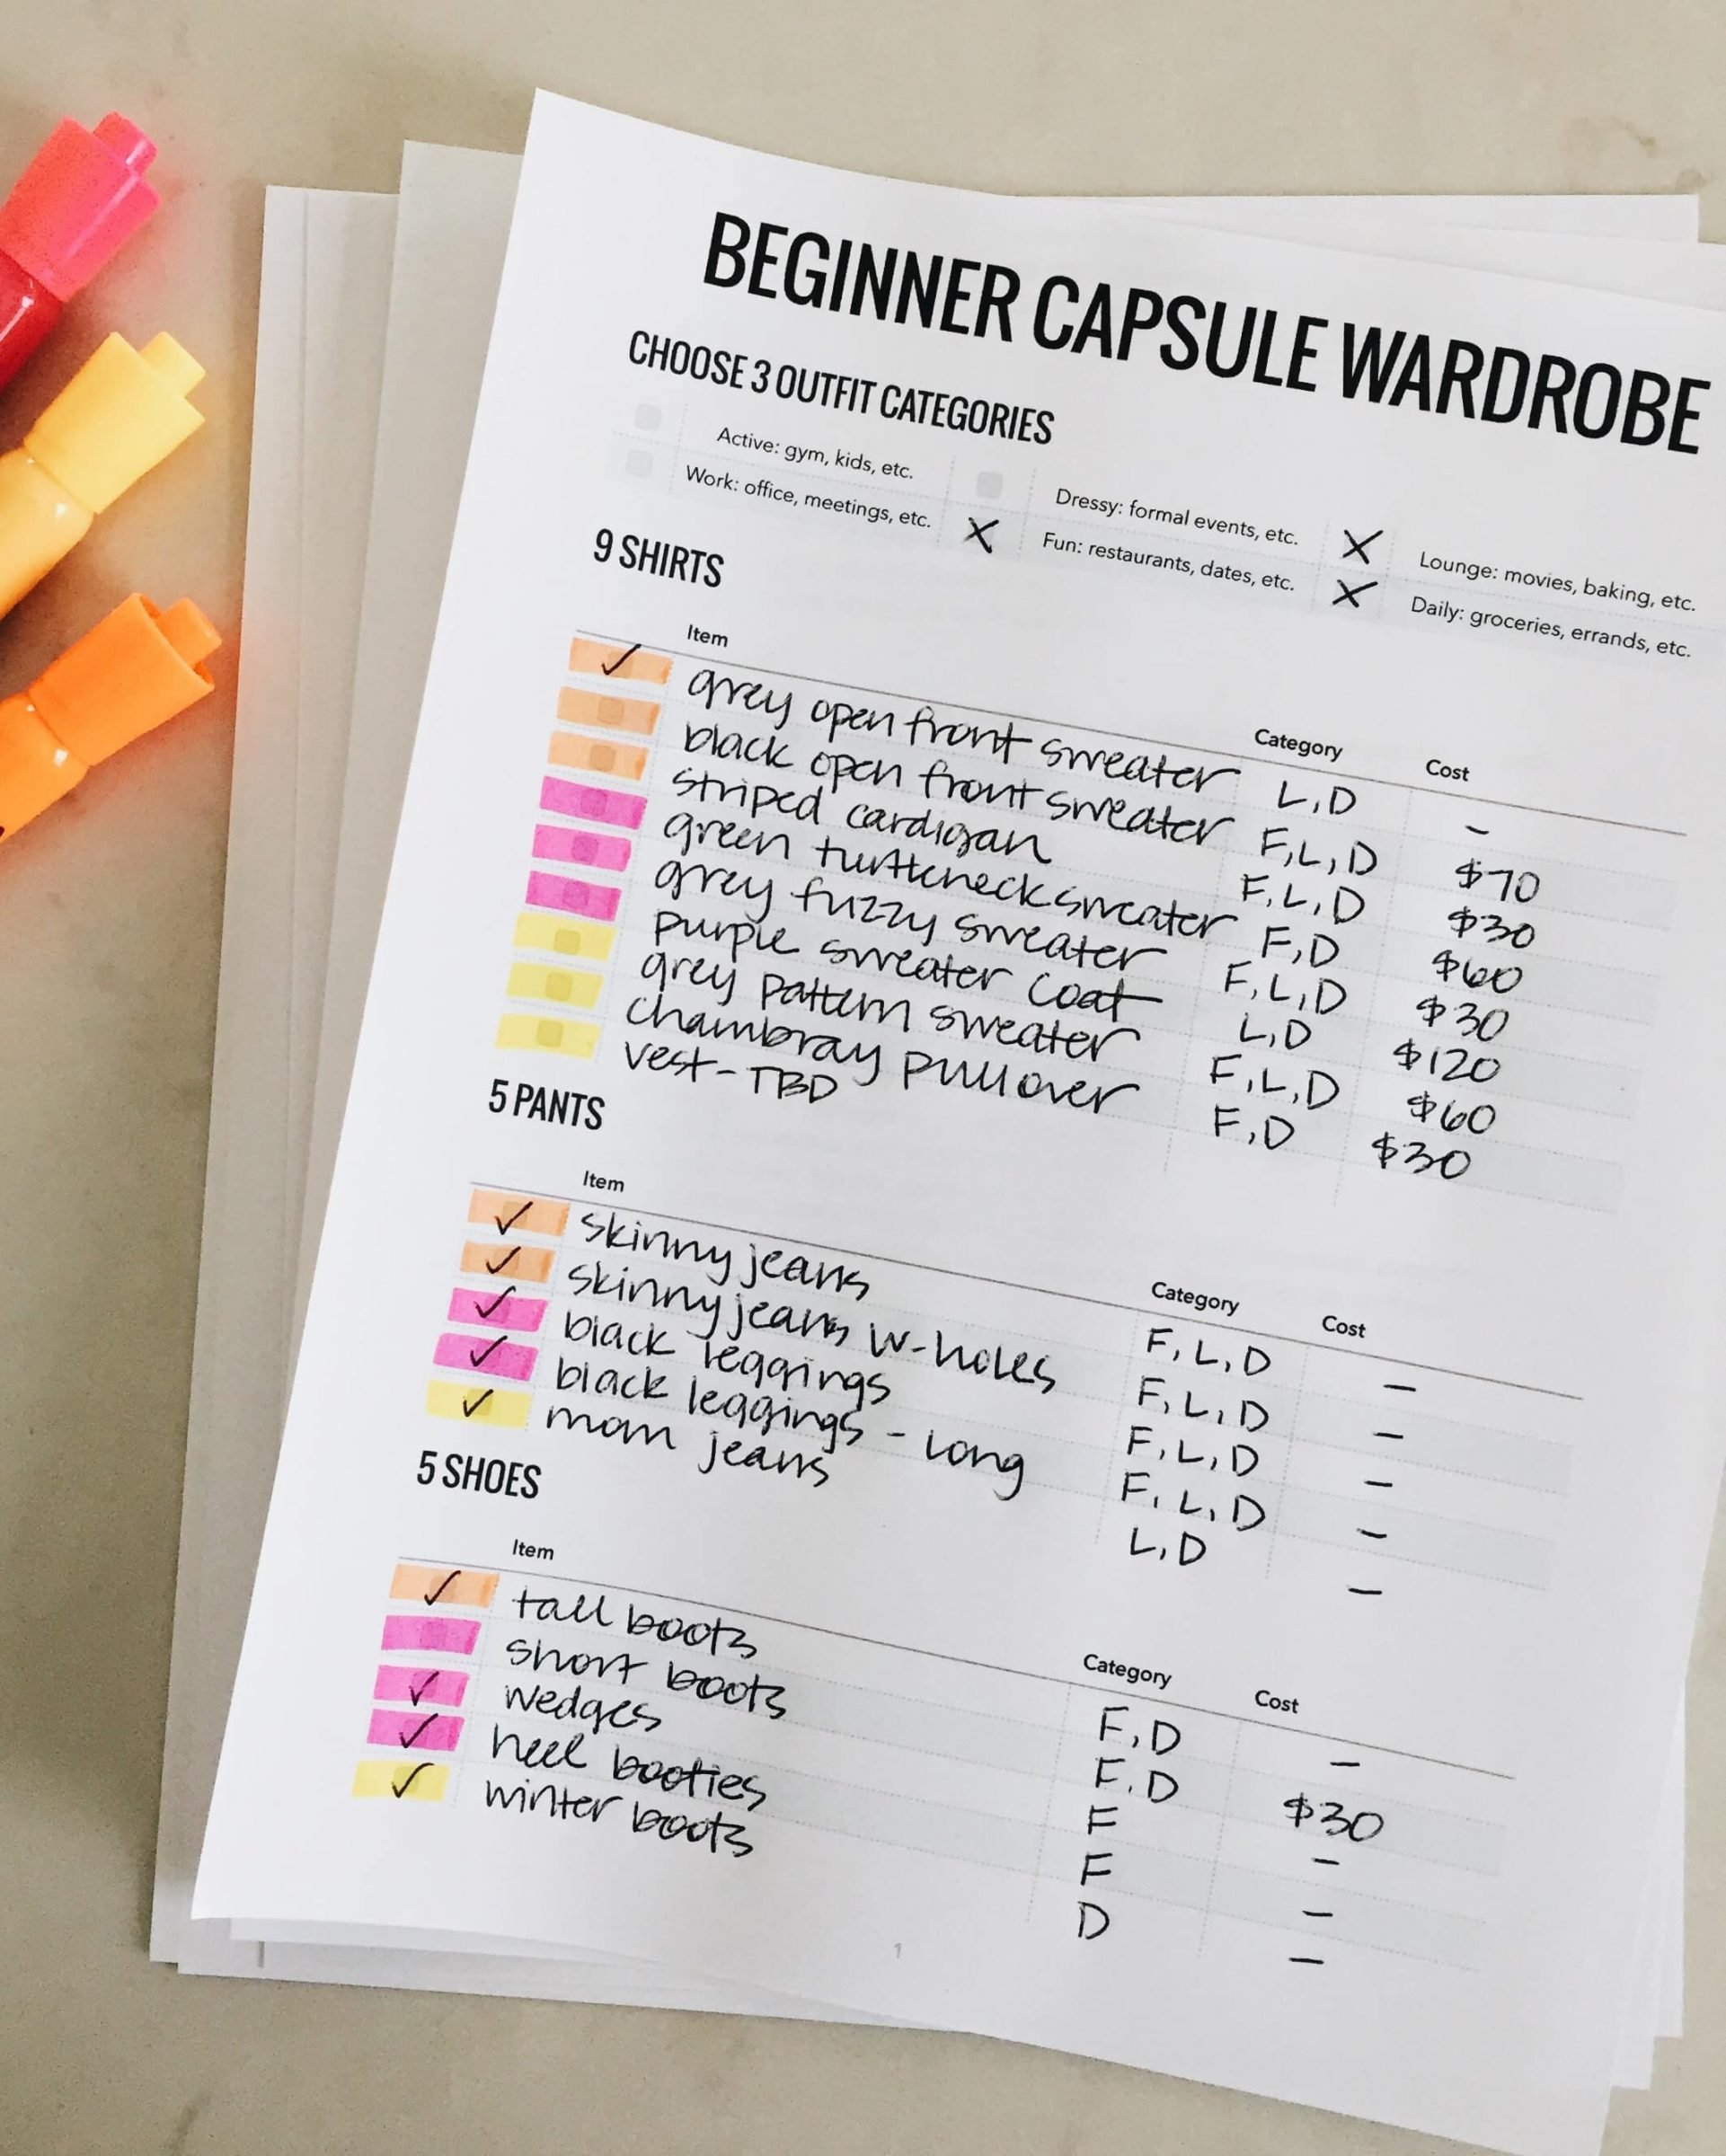 Beginnger Capsule Wardrobe Sheet Plan.